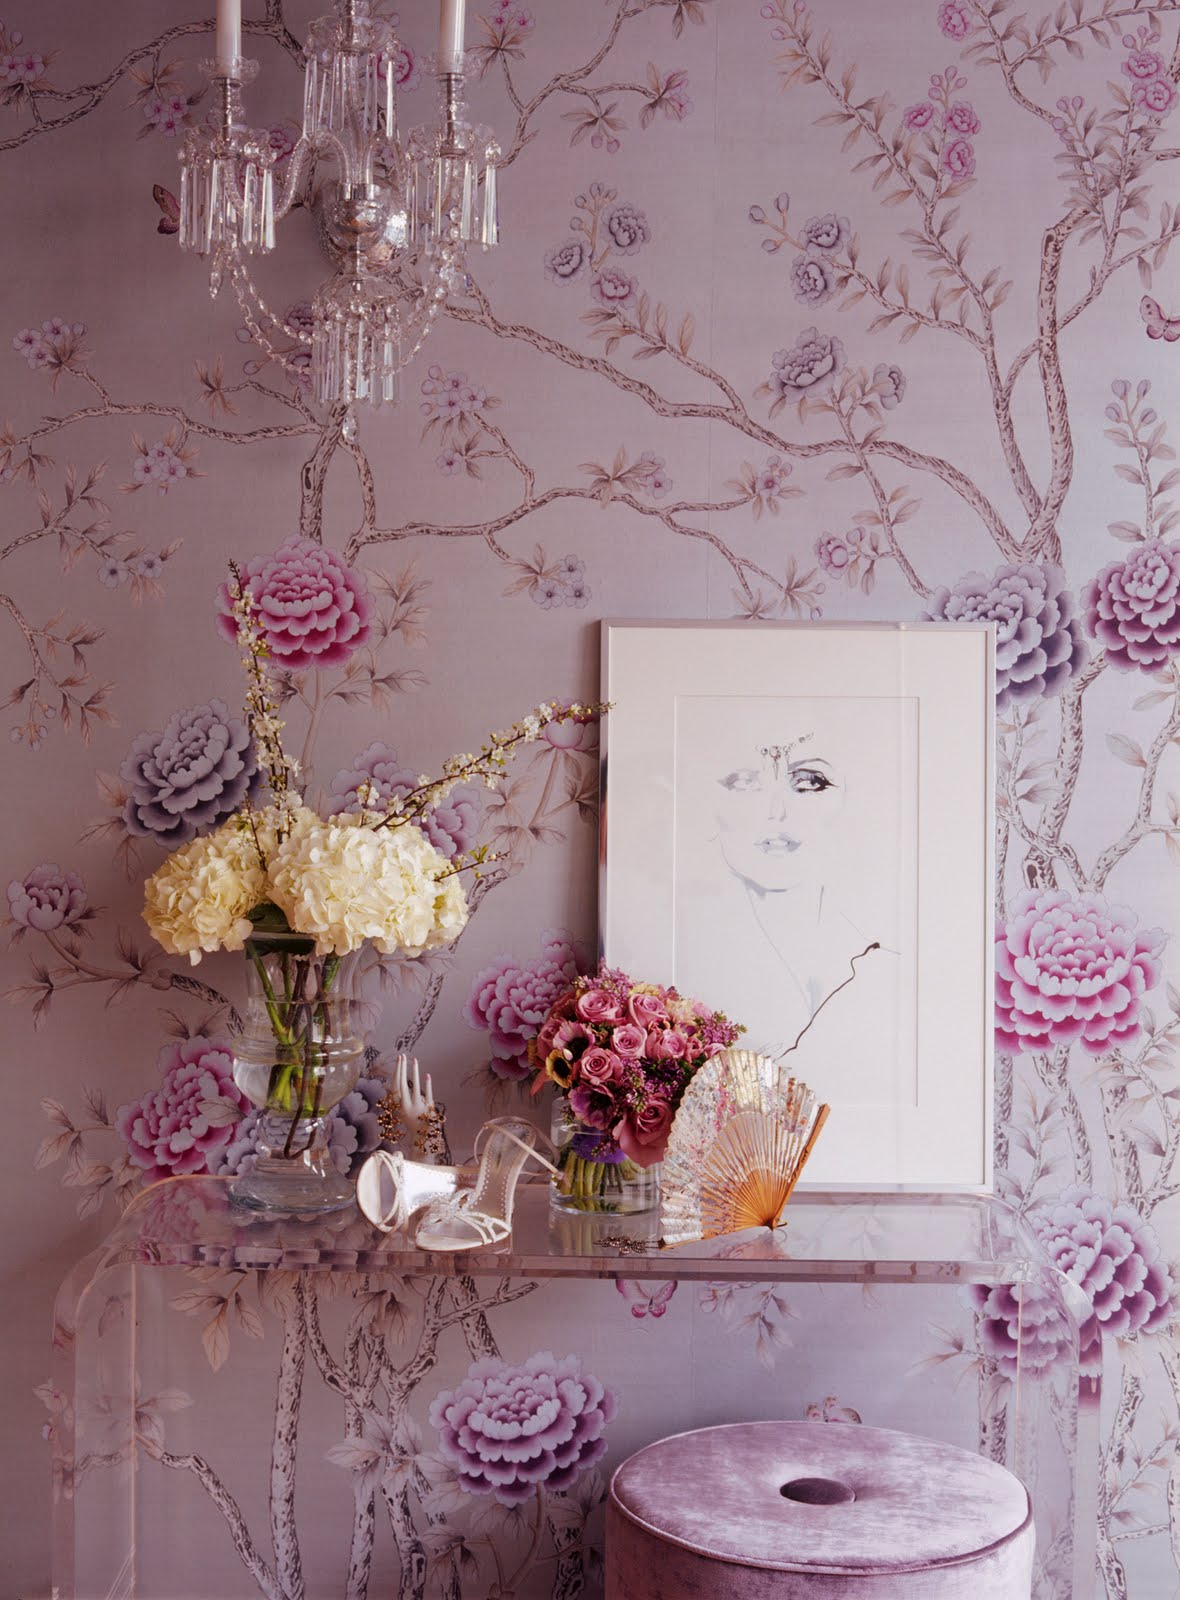 de Gournay hand painted wallpaper On The Wall Pinterest 1180x1600